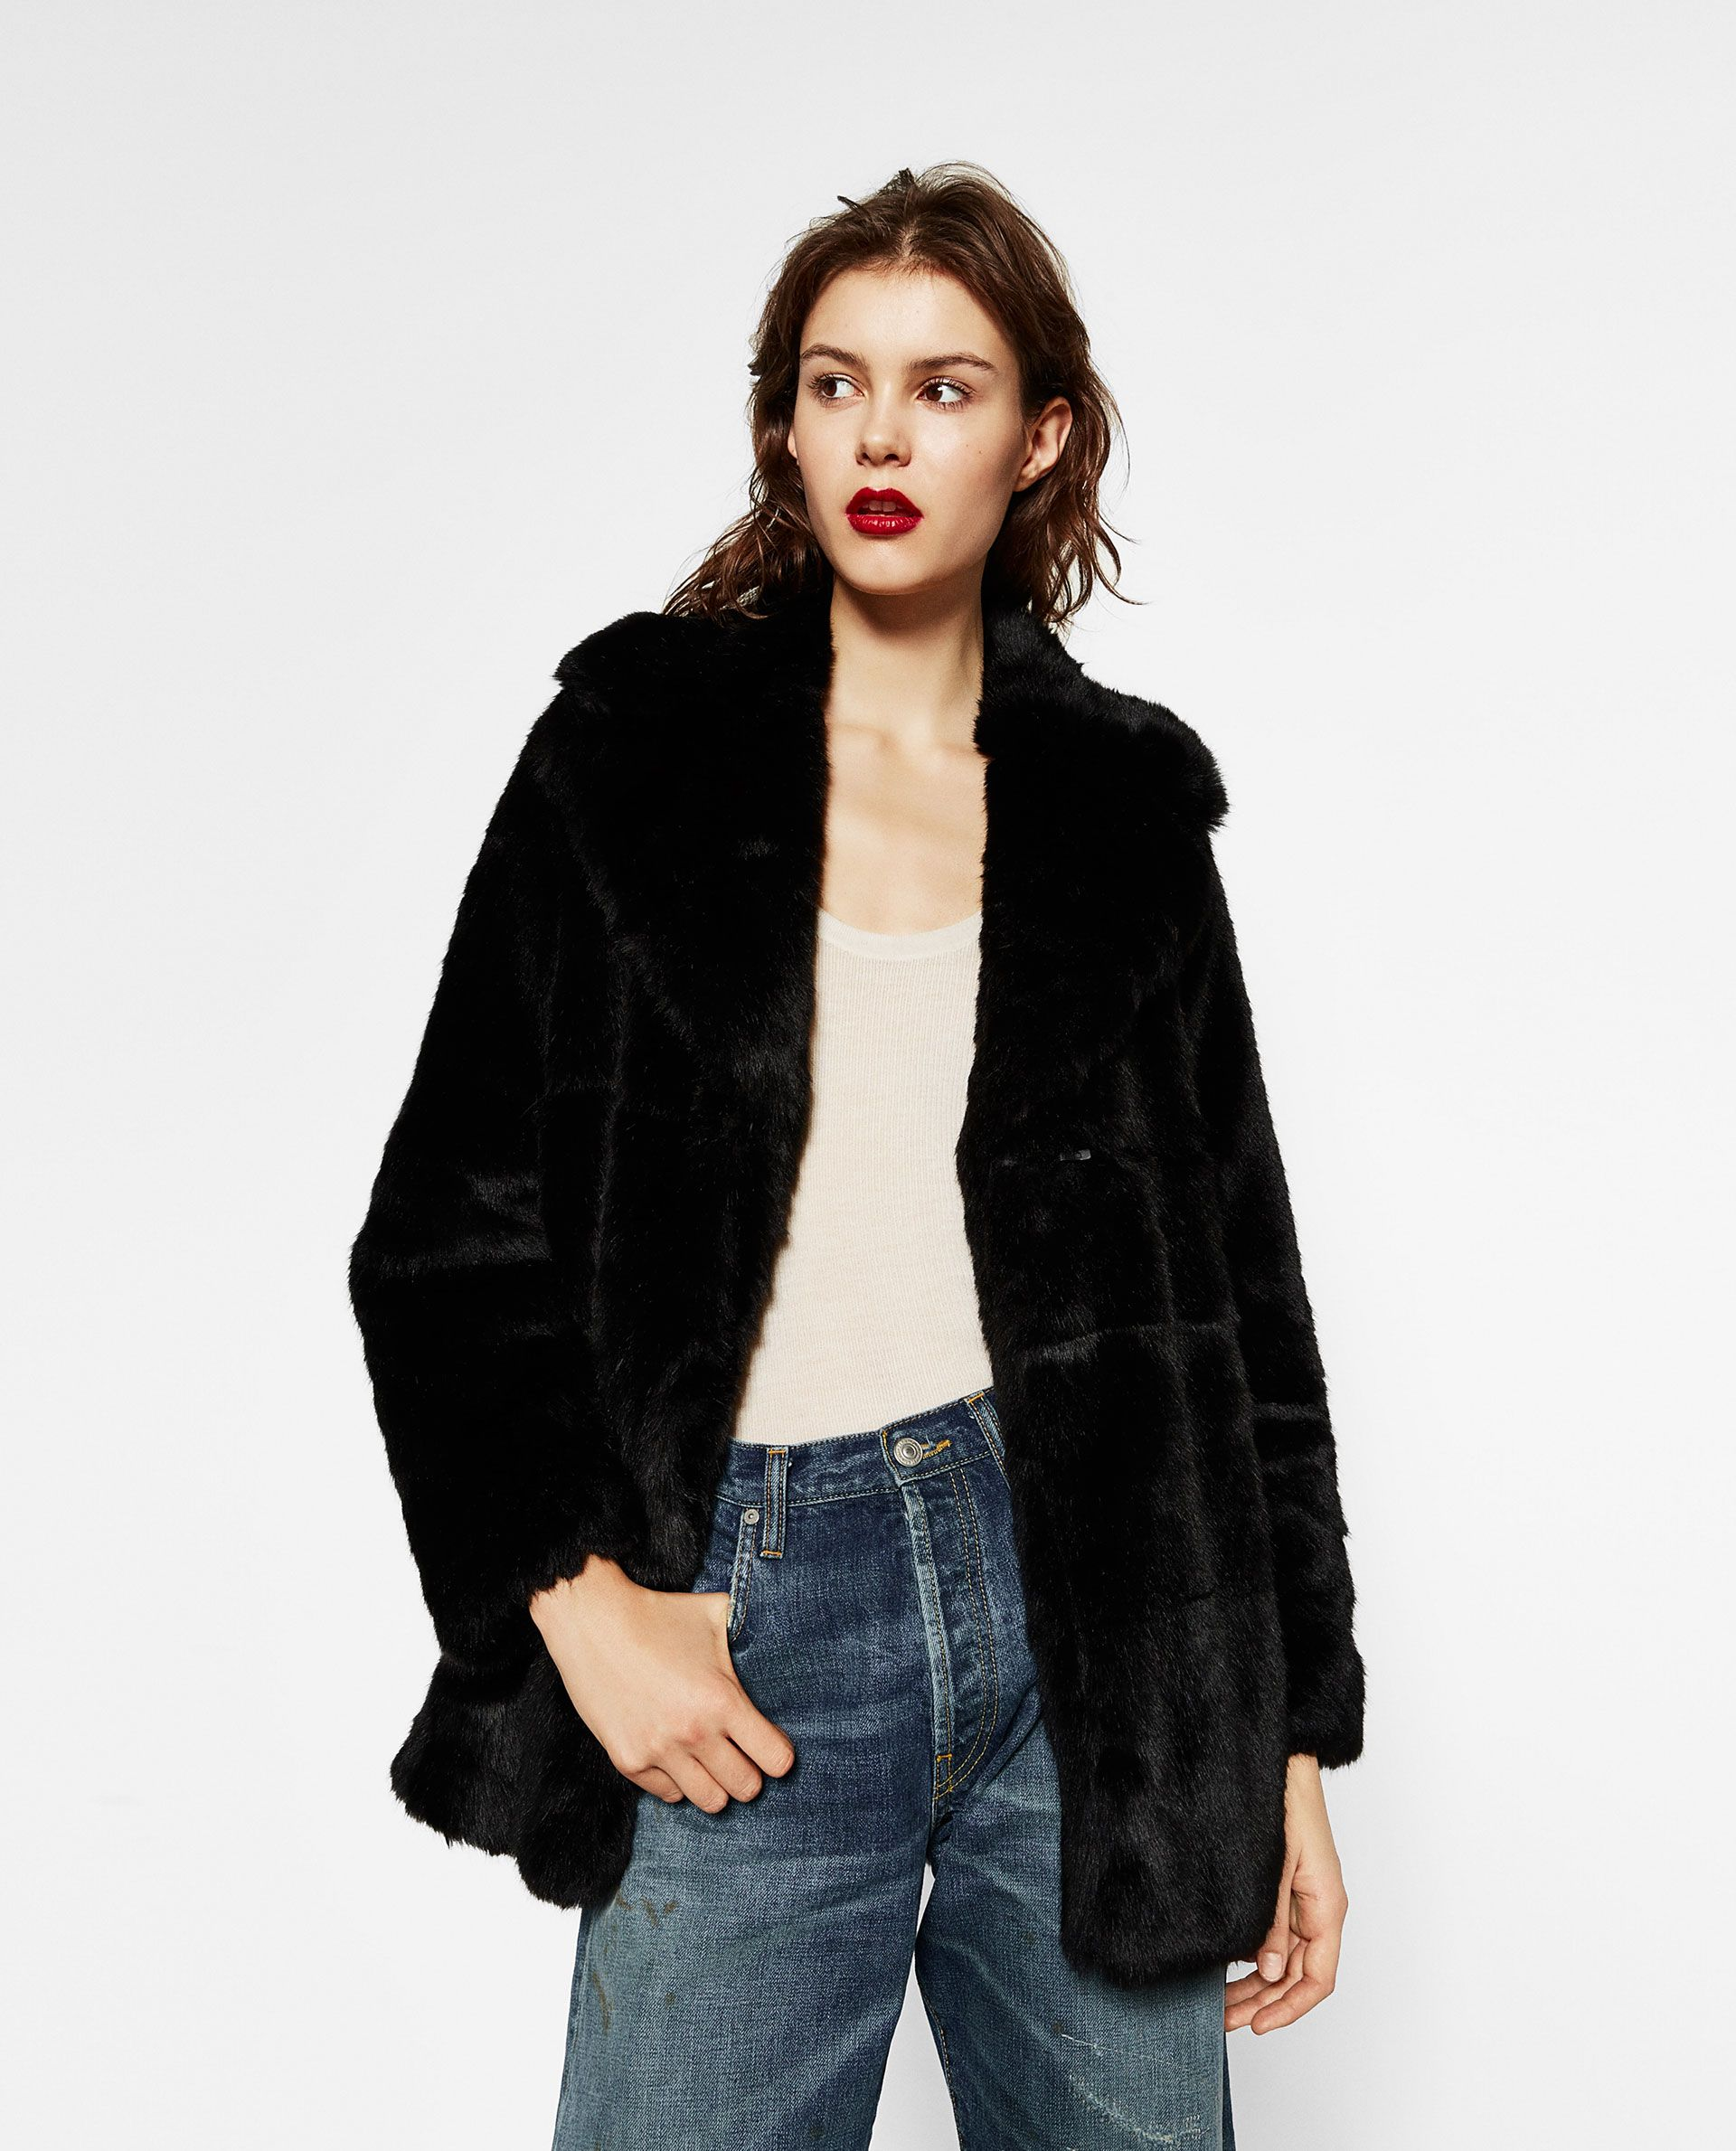 619d714a47 ZARA - BLACK FRIDAY - SHORT FAUX FUR COAT | ZARA | Black fur coat ...